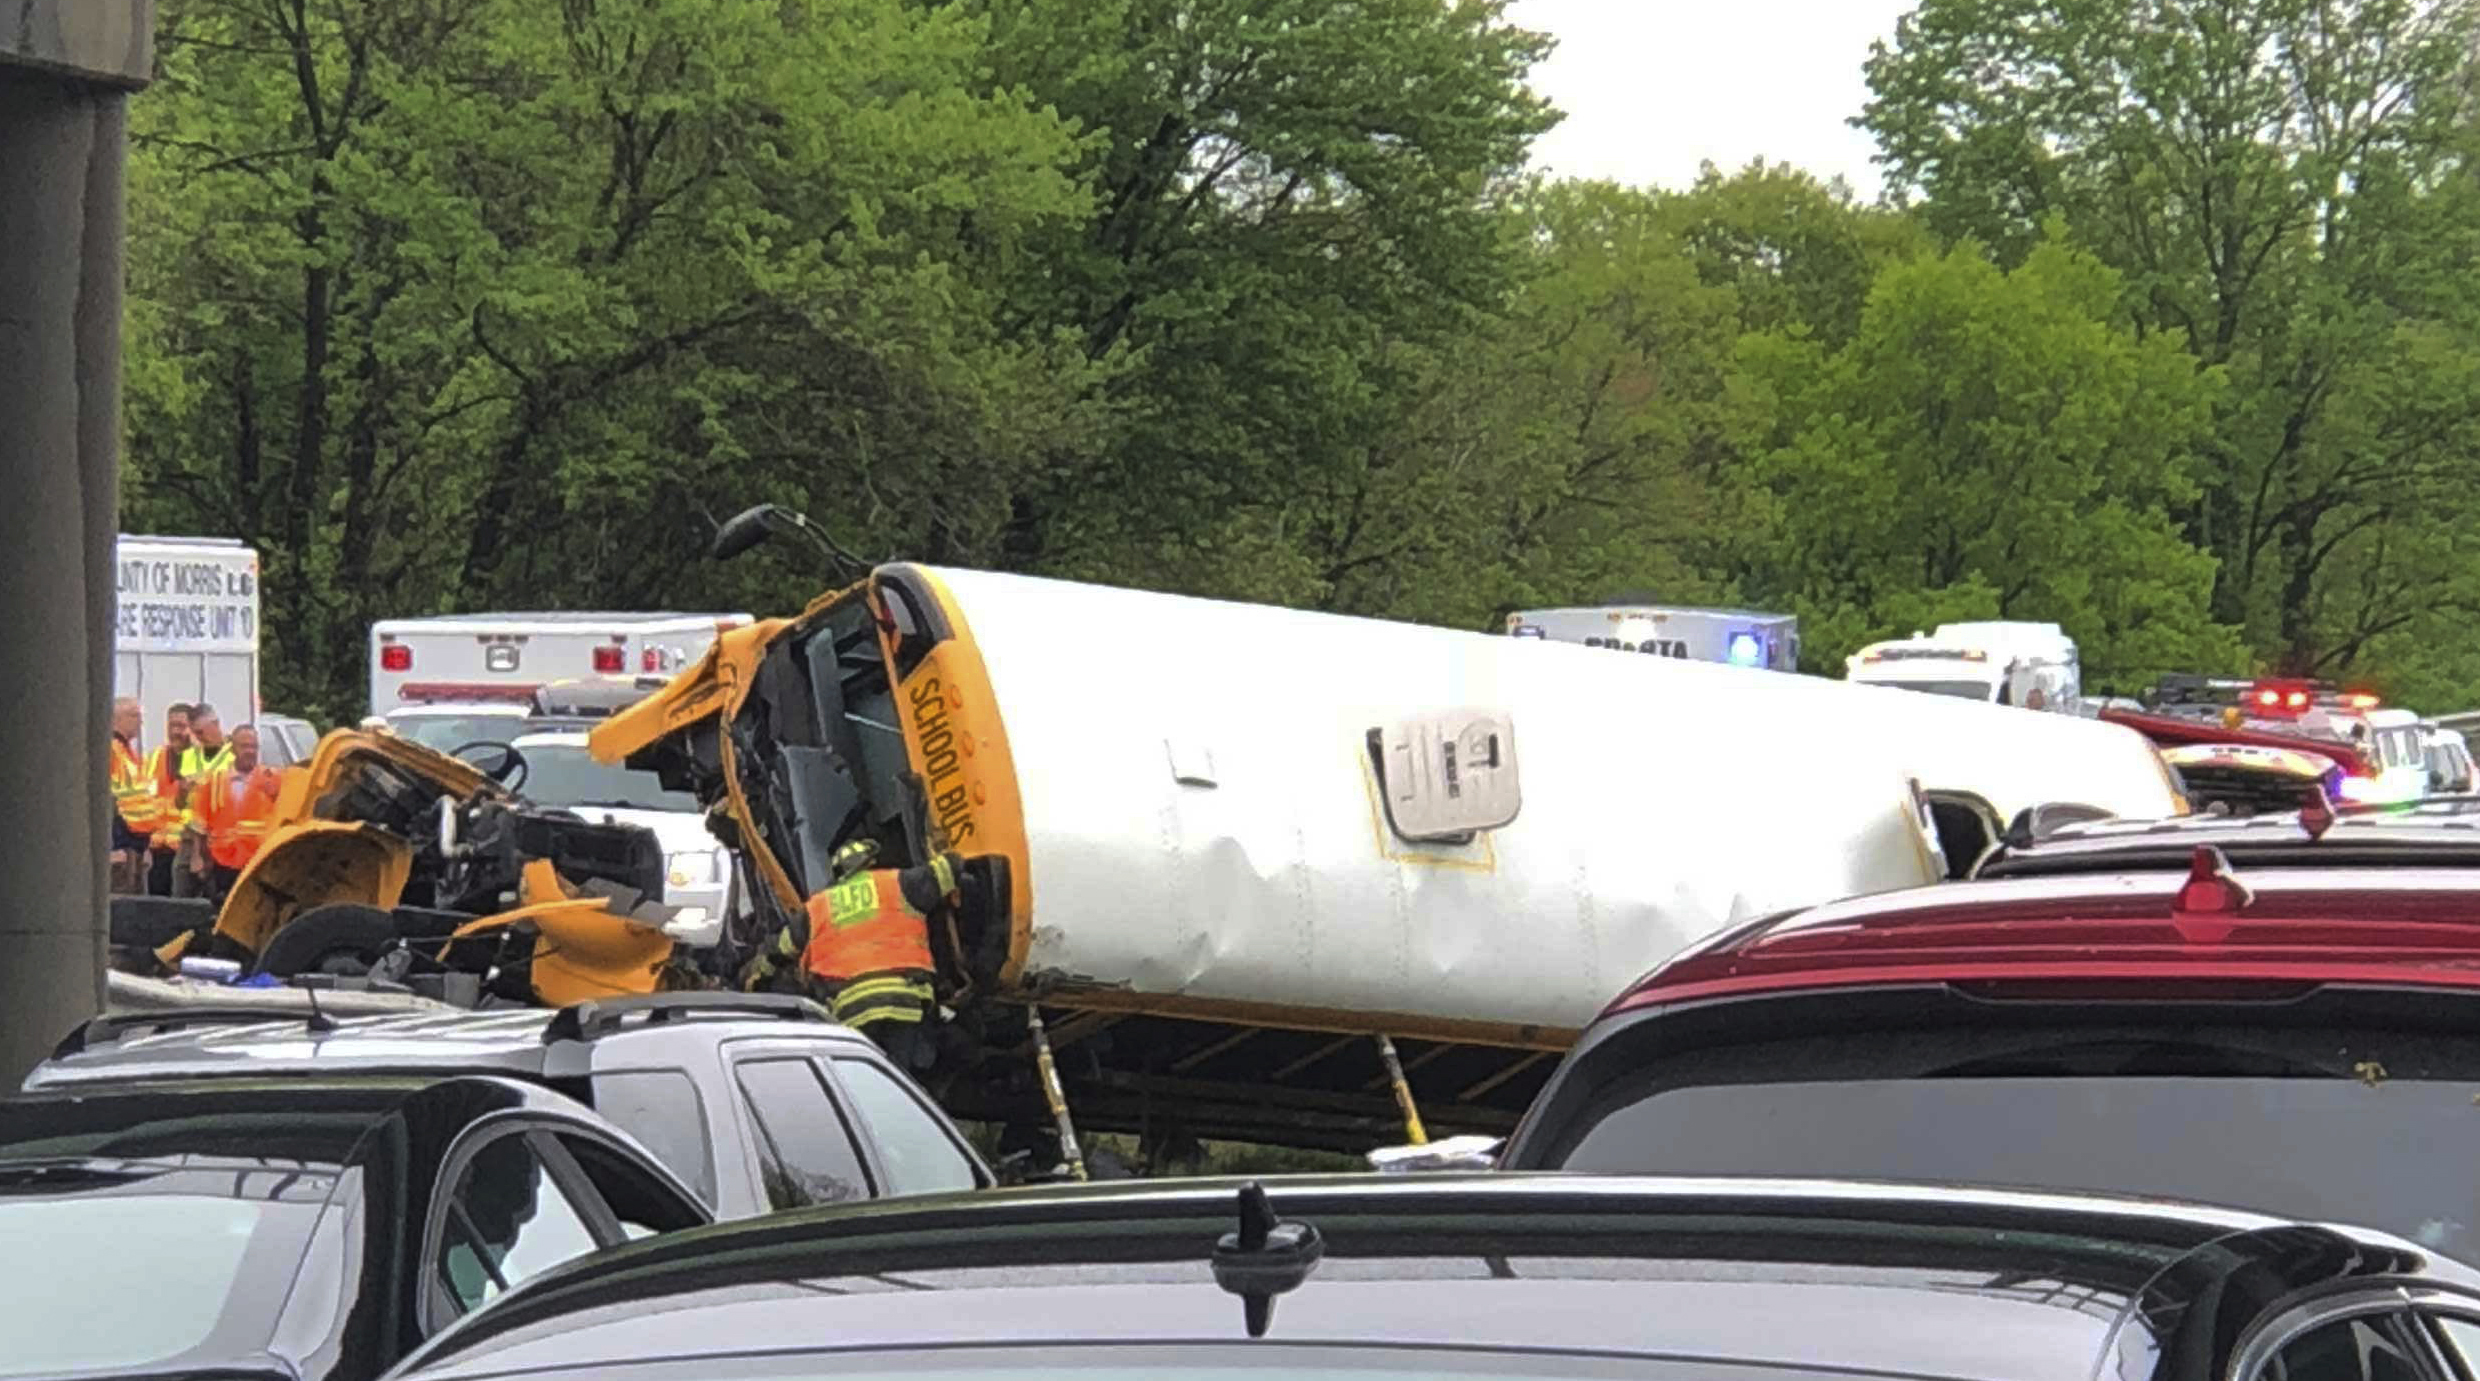 <div class='meta'><div class='origin-logo' data-origin='none'></div><span class='caption-text' data-credit='Manuel Absalon via AP'>Emergency personnel respond to a crash after a school bus and dump truck collided, injuring multiple people, on Interstate 80 in Mount Olive, N.J., Thursday, May 17, 2018.</span></div>